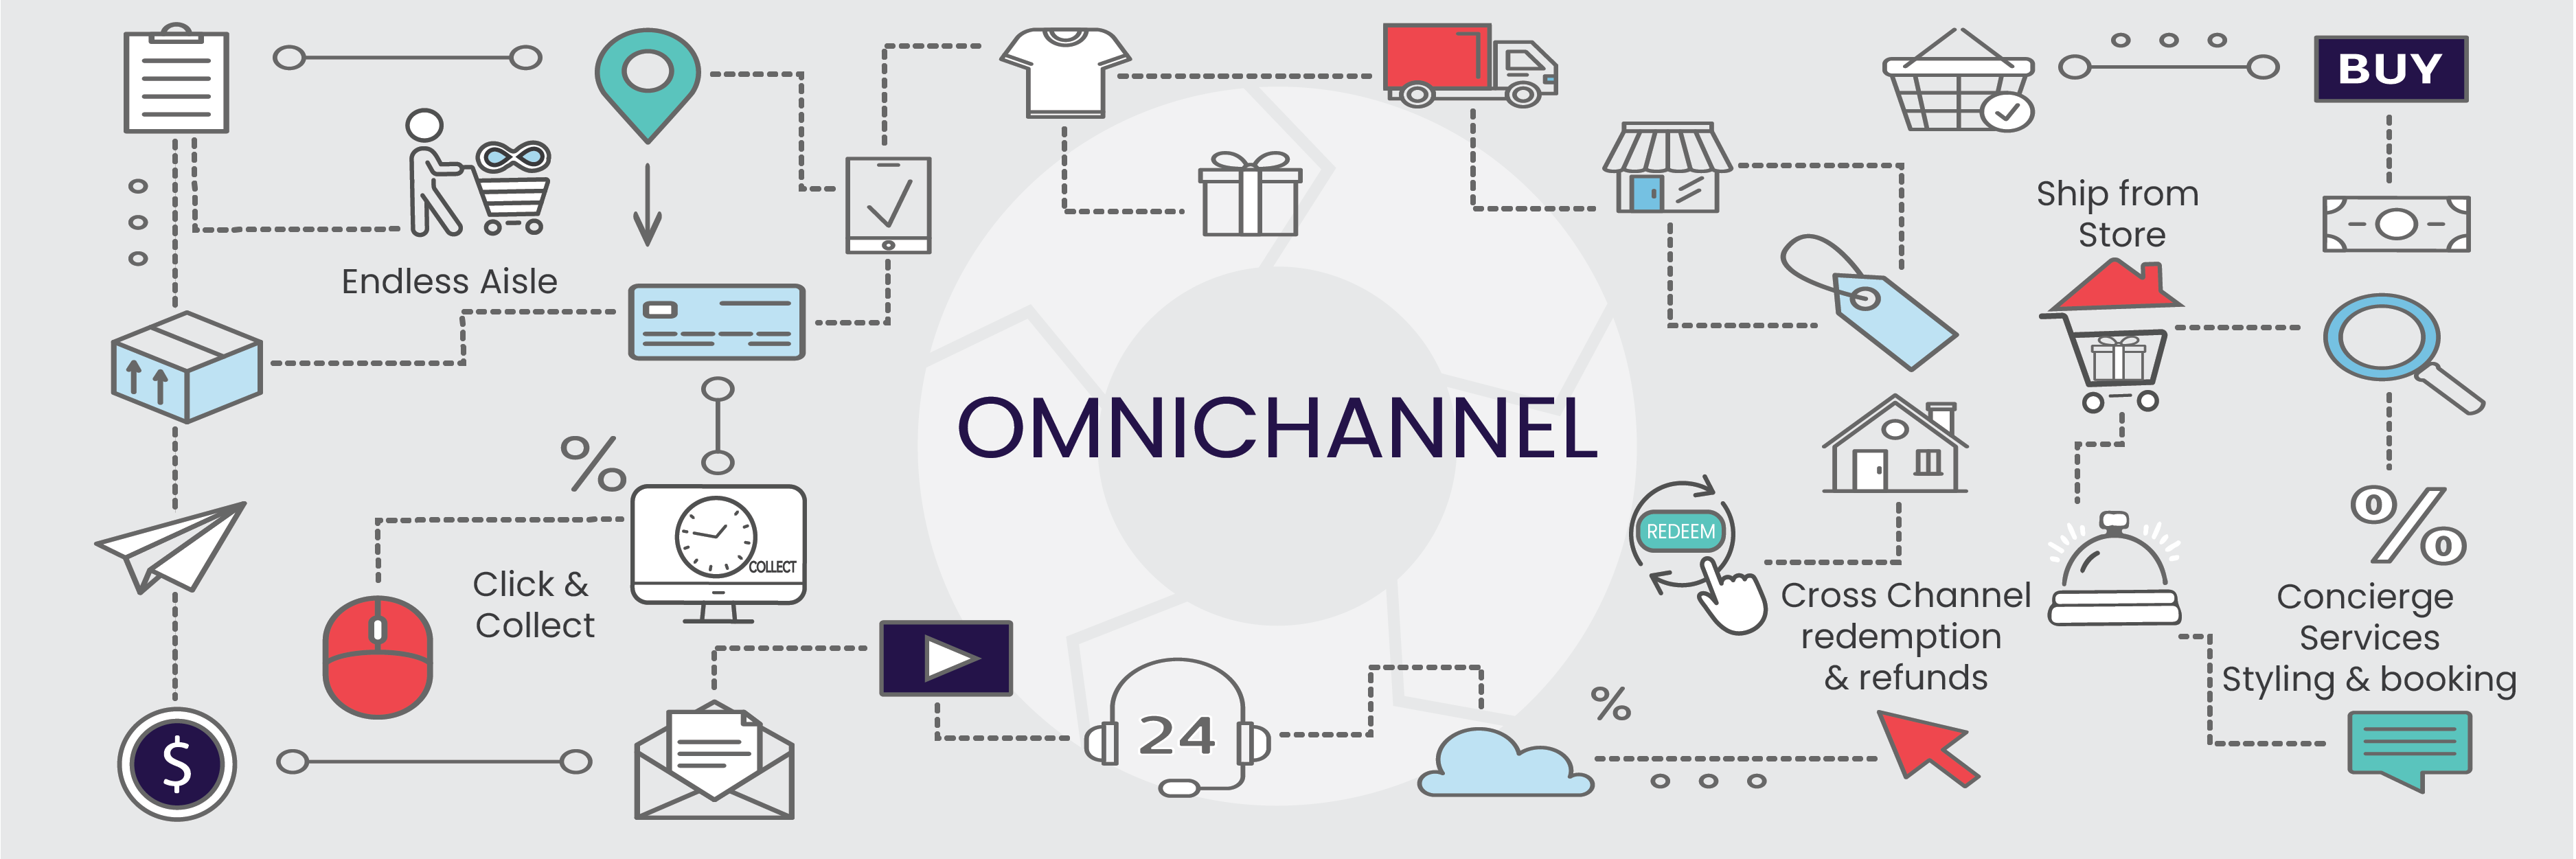 Omnichannel Essentials